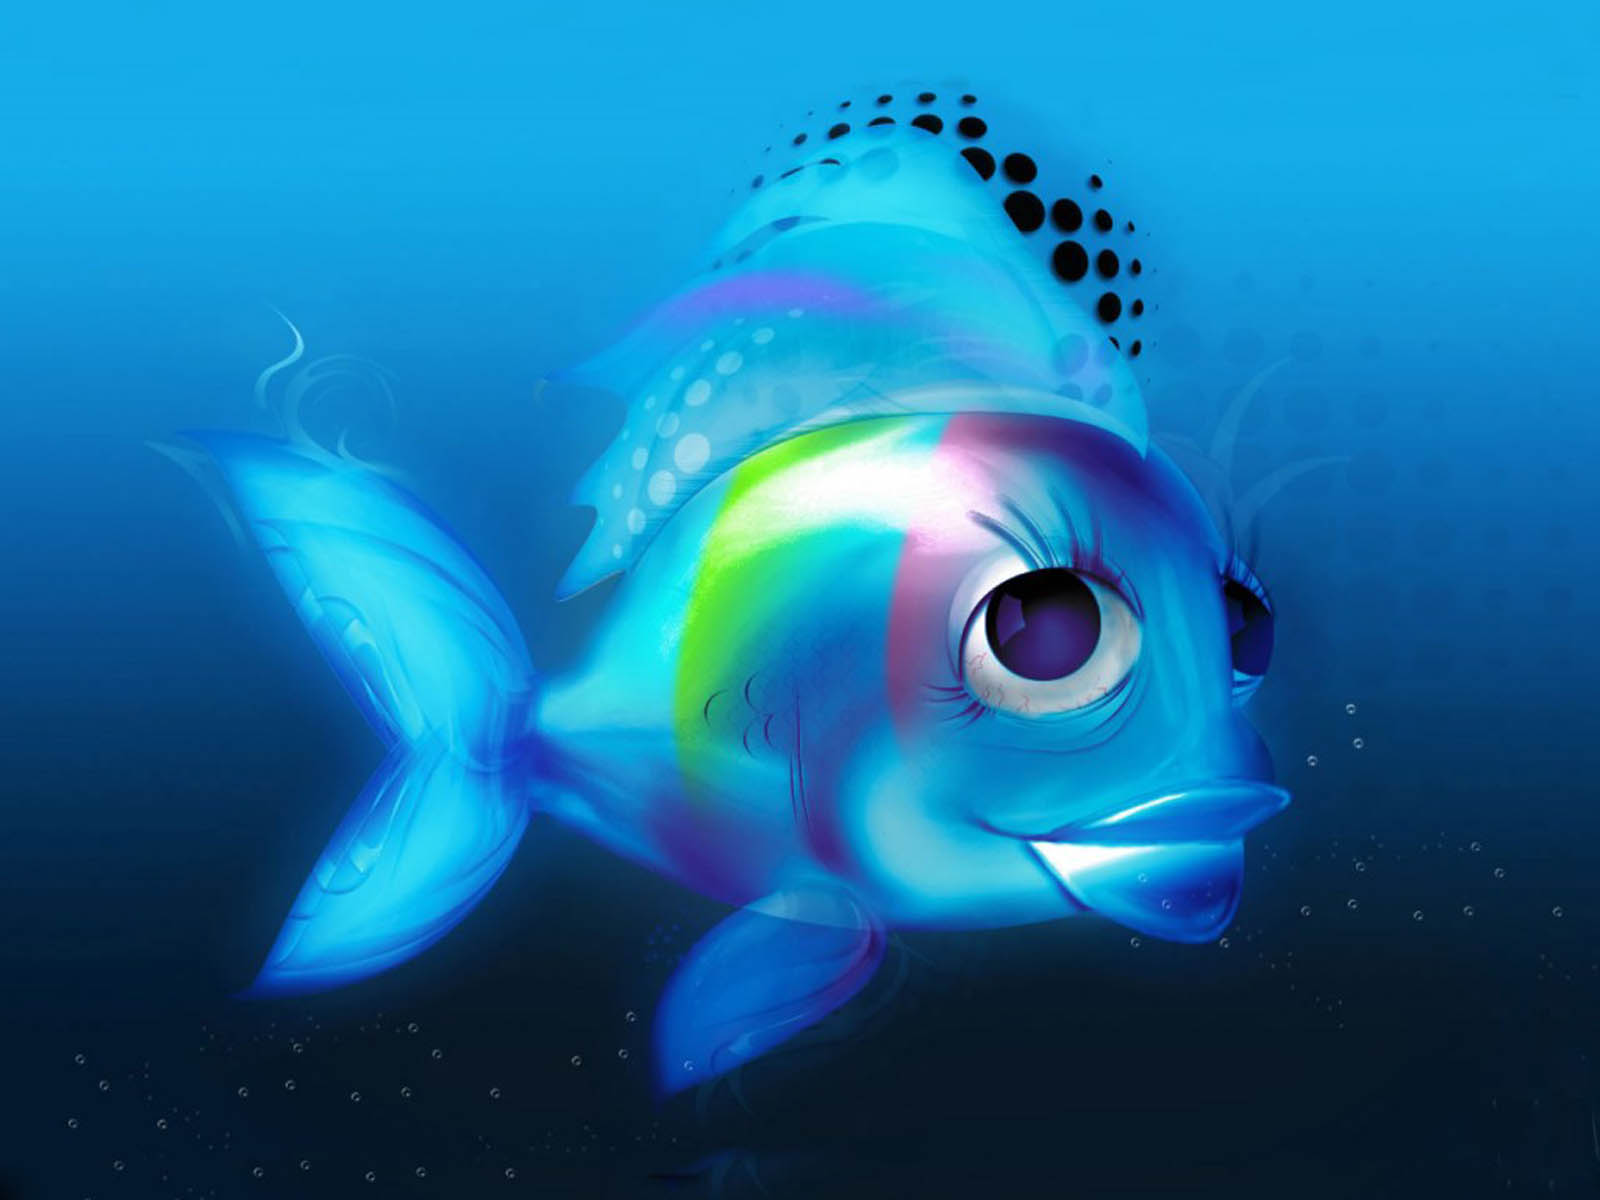 Tag 3D Fish Wallpapers Images Photos Pictures and Backgrounds for 1600x1200